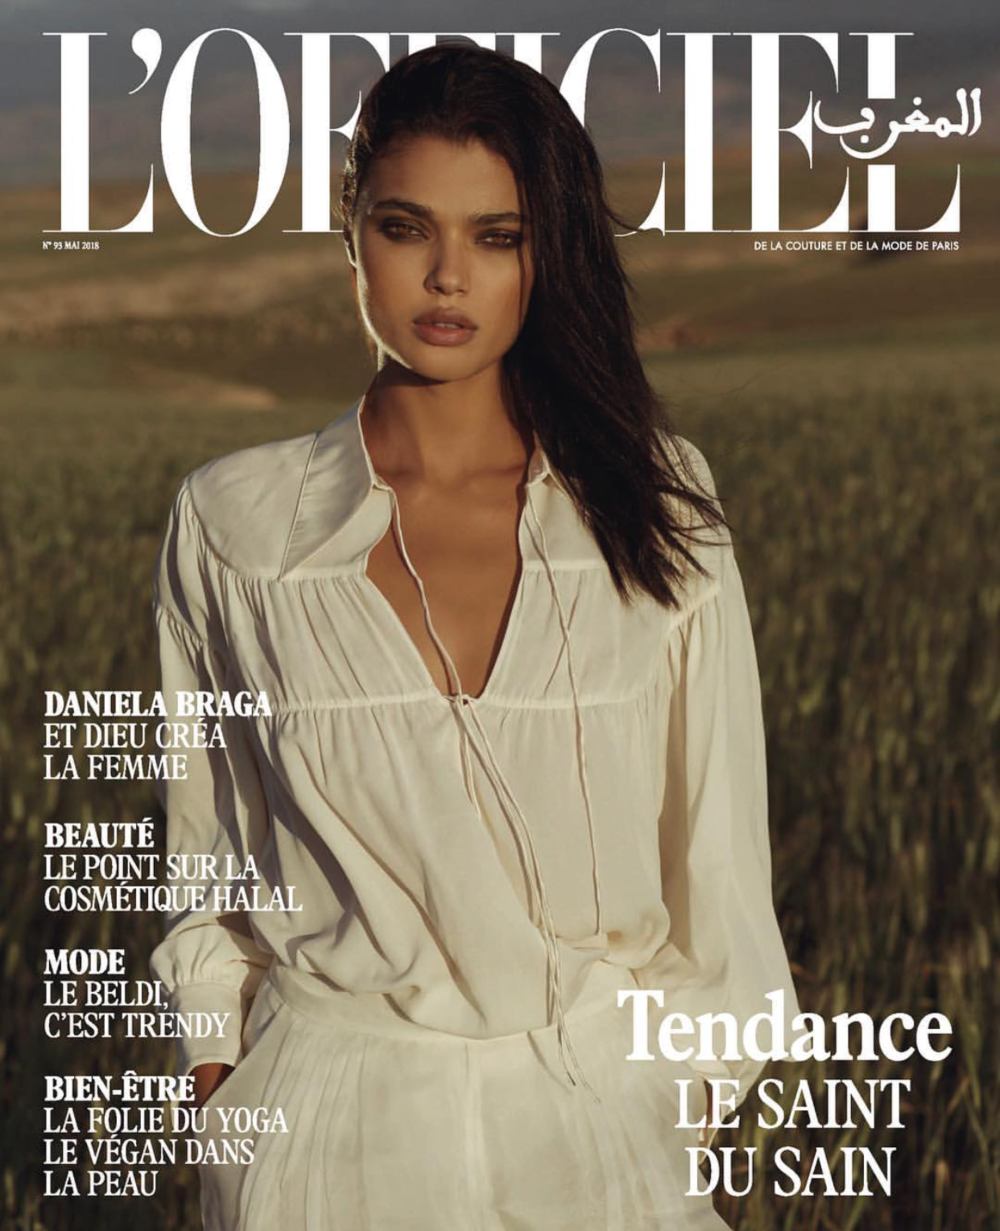 L'OFFICIEL MAGAZINE   MAROCCO   (CLICK TO VIEW GALLERY)